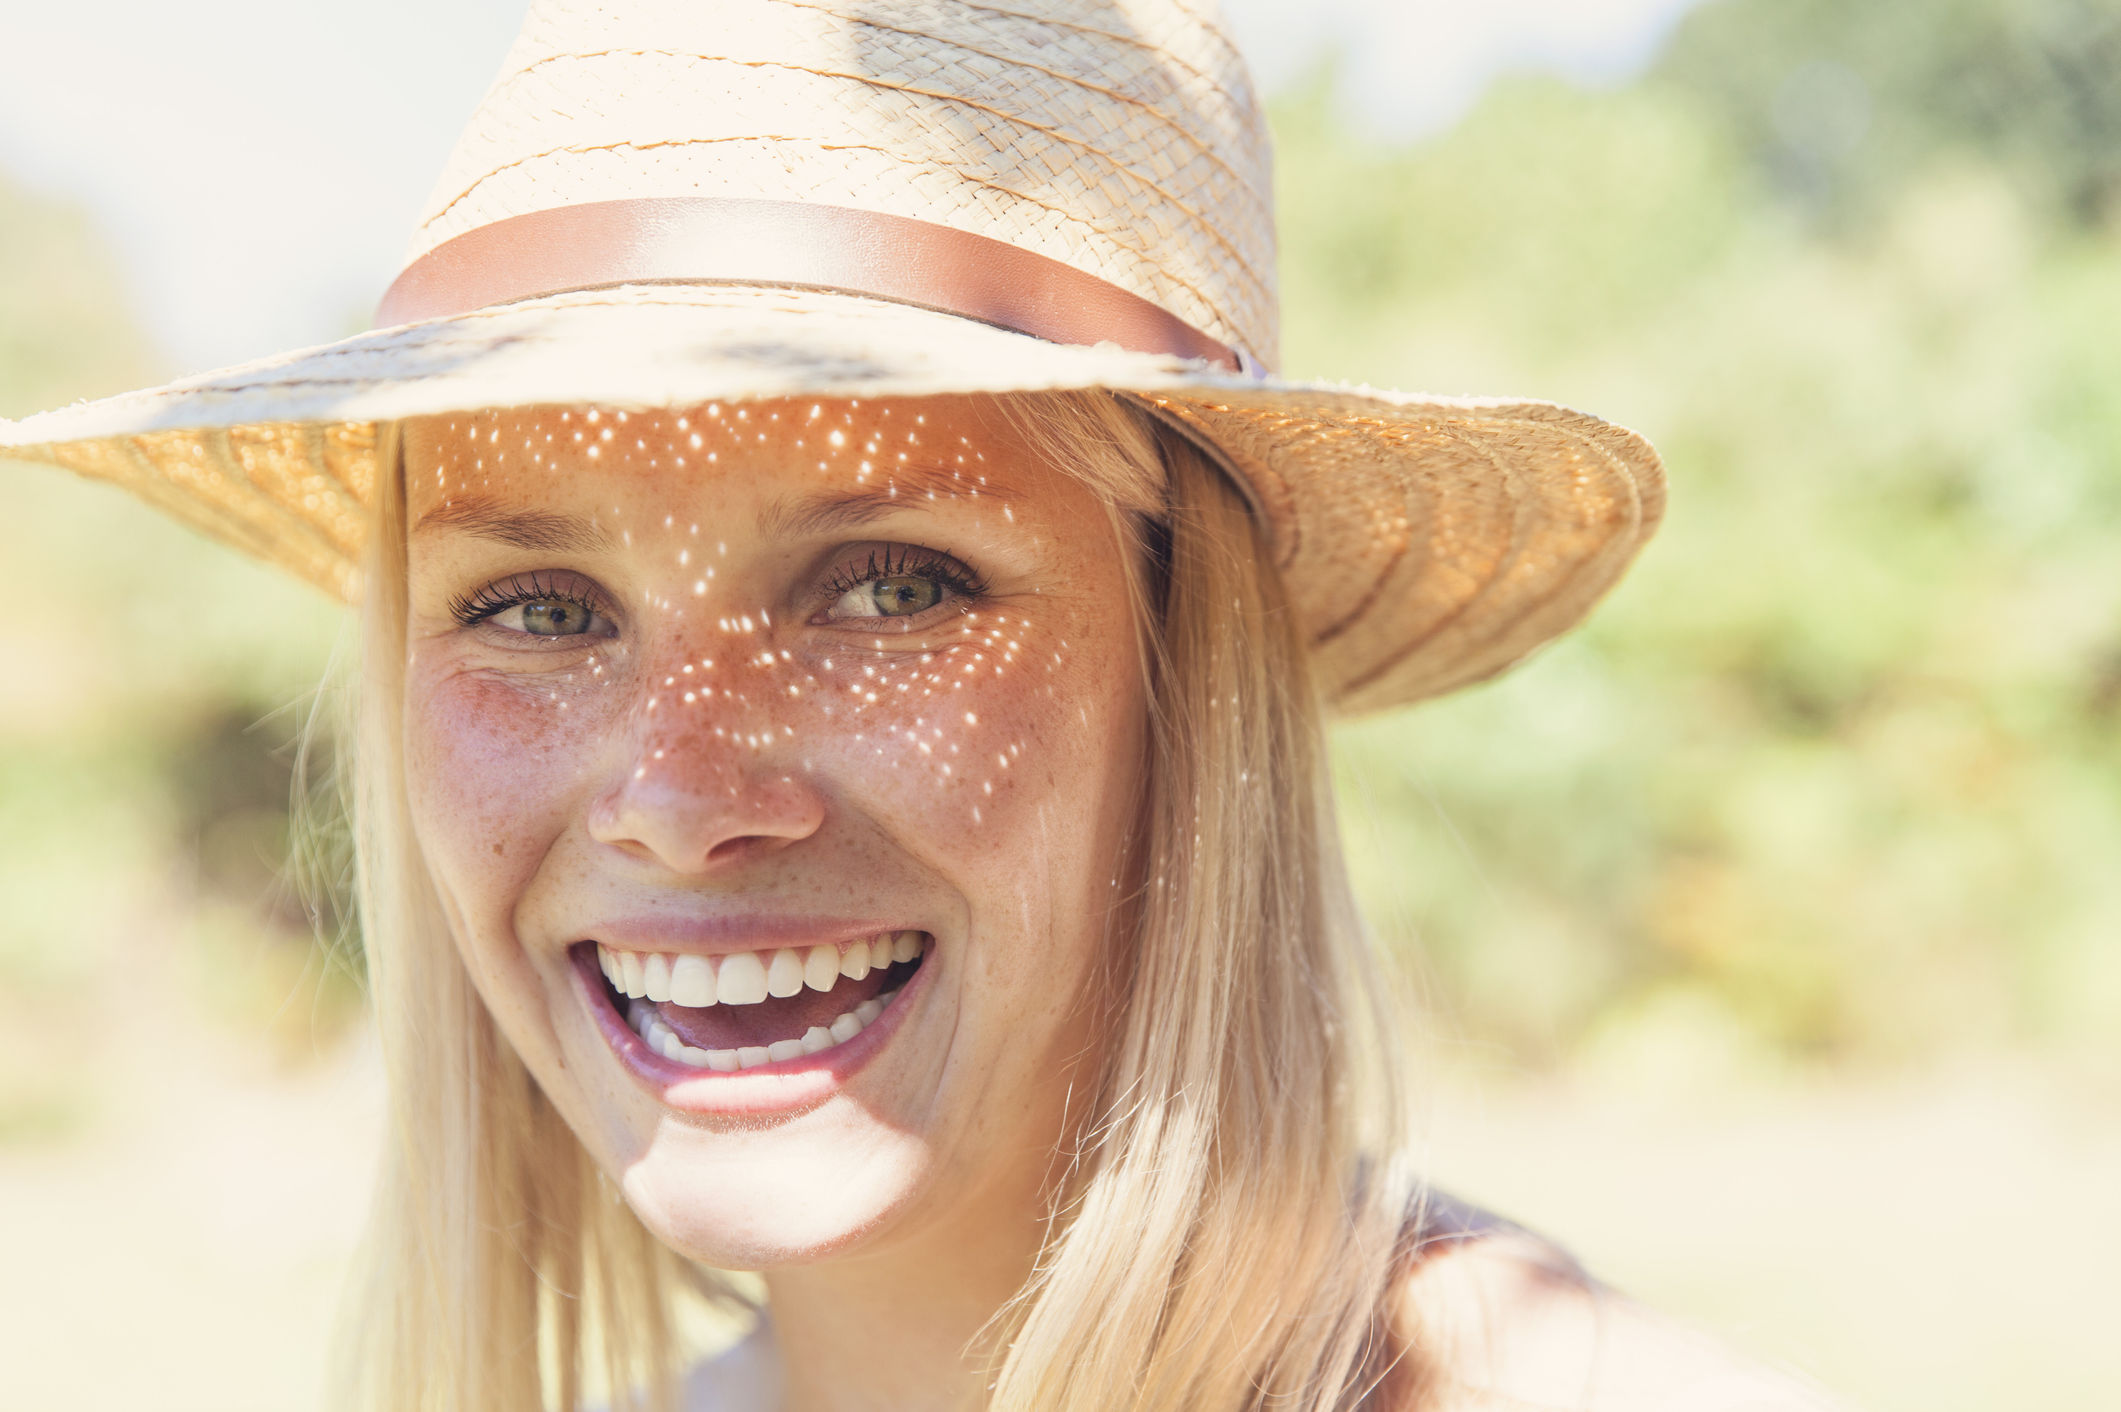 A Facial Sunscreen That Really Can Withstand Summer Heat